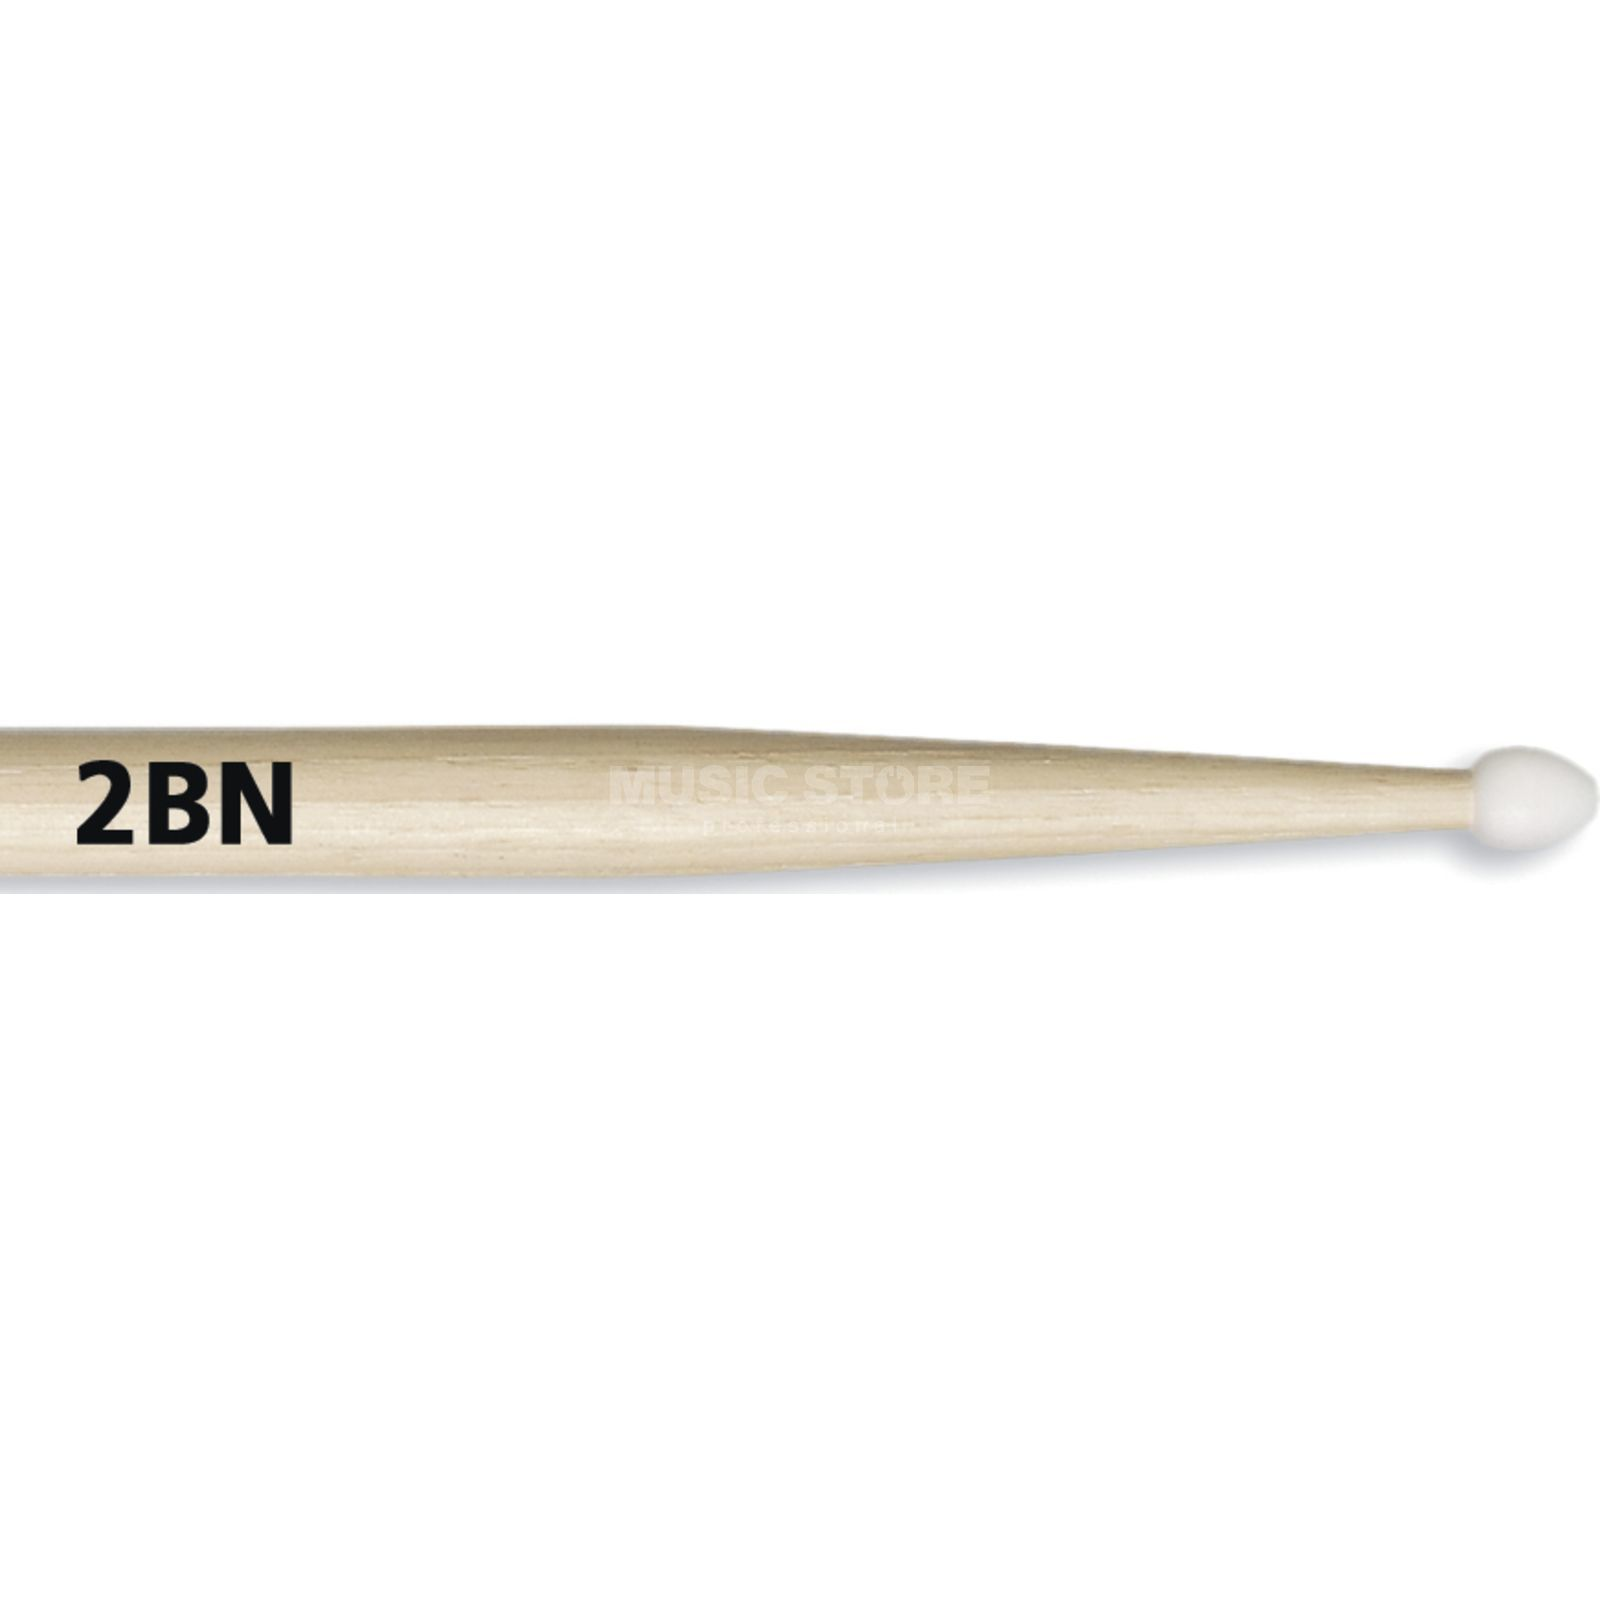 Vic-Firth 2BN Sticks, American Classic, Nylon Tip Produktbillede